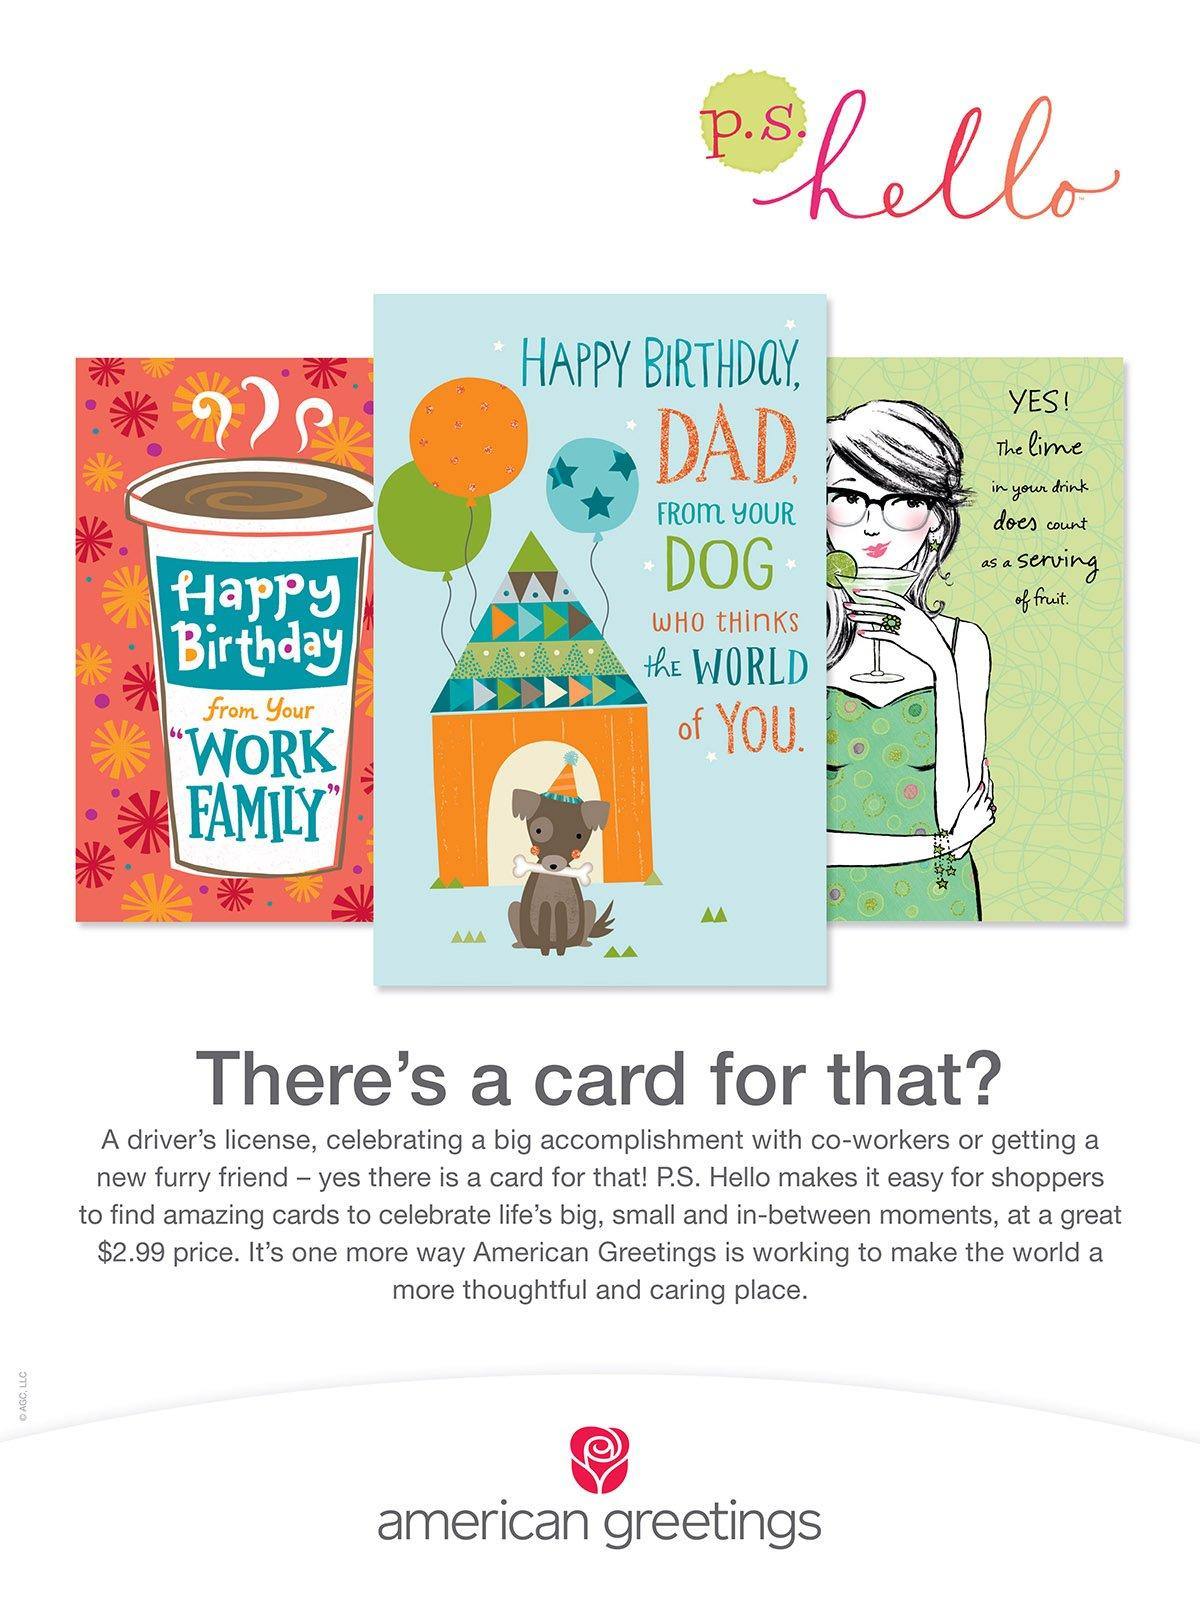 Brand New Ps Hello Line Of Cards From American Greetings